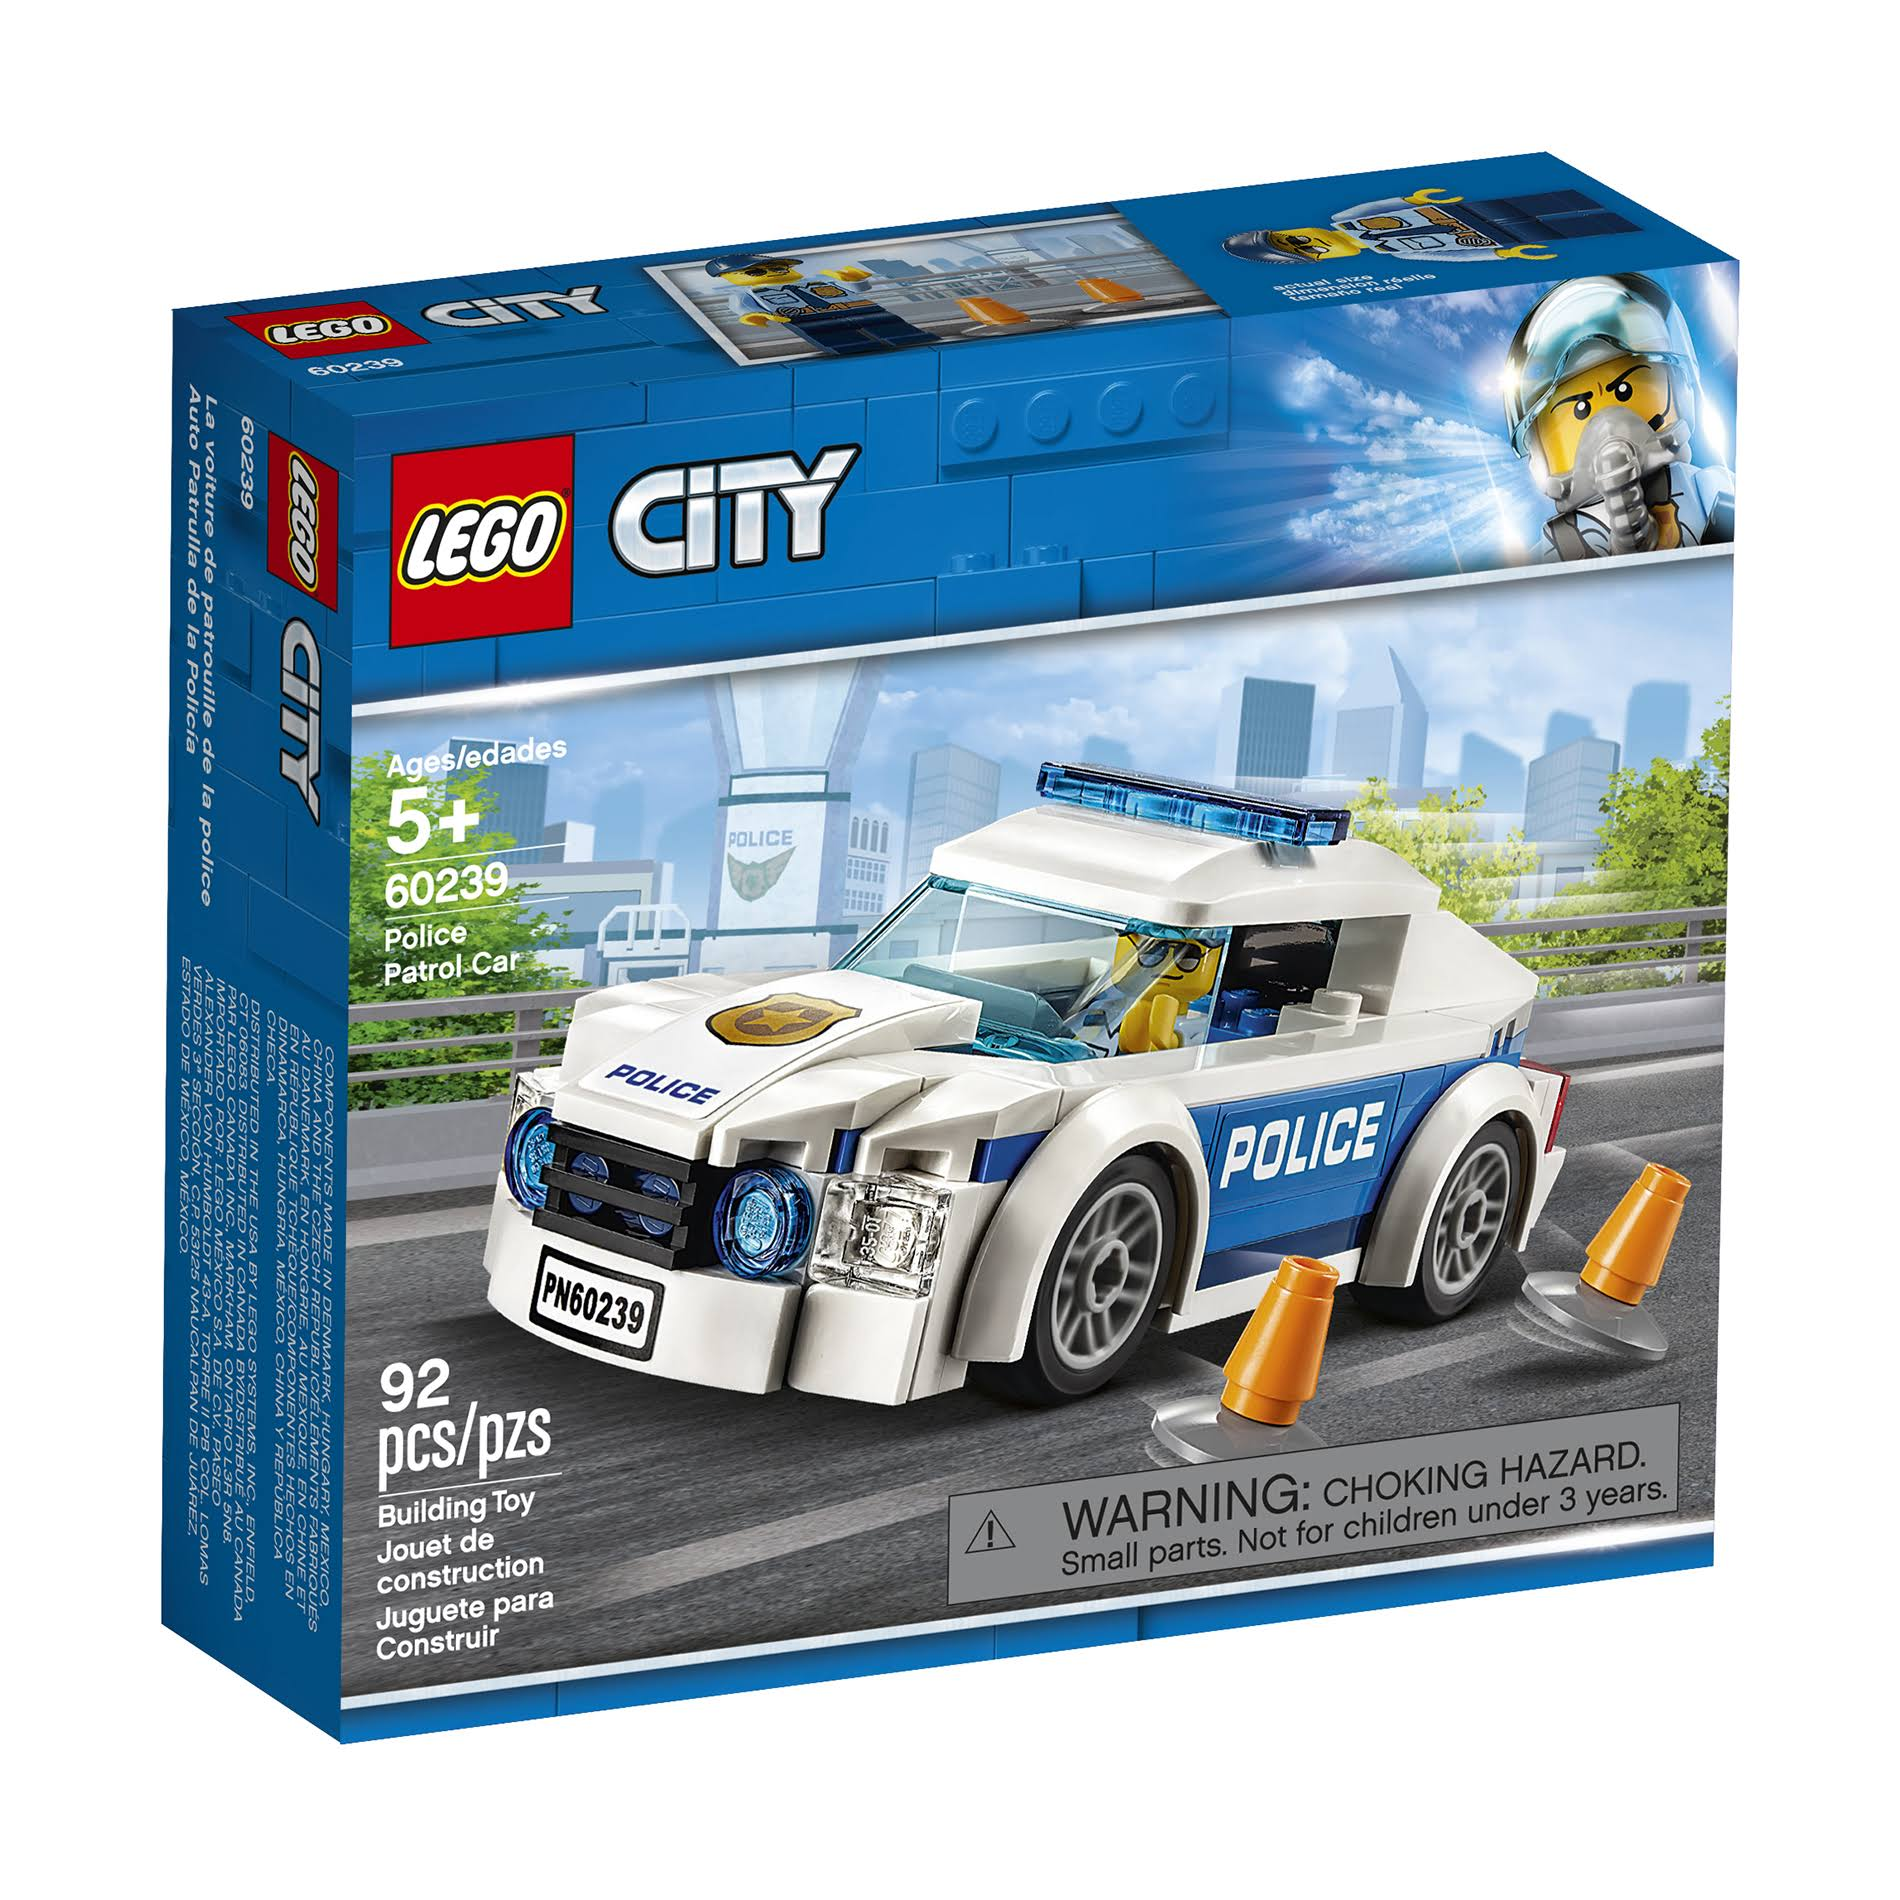 Lego City Building Toy, Police Patrol Car